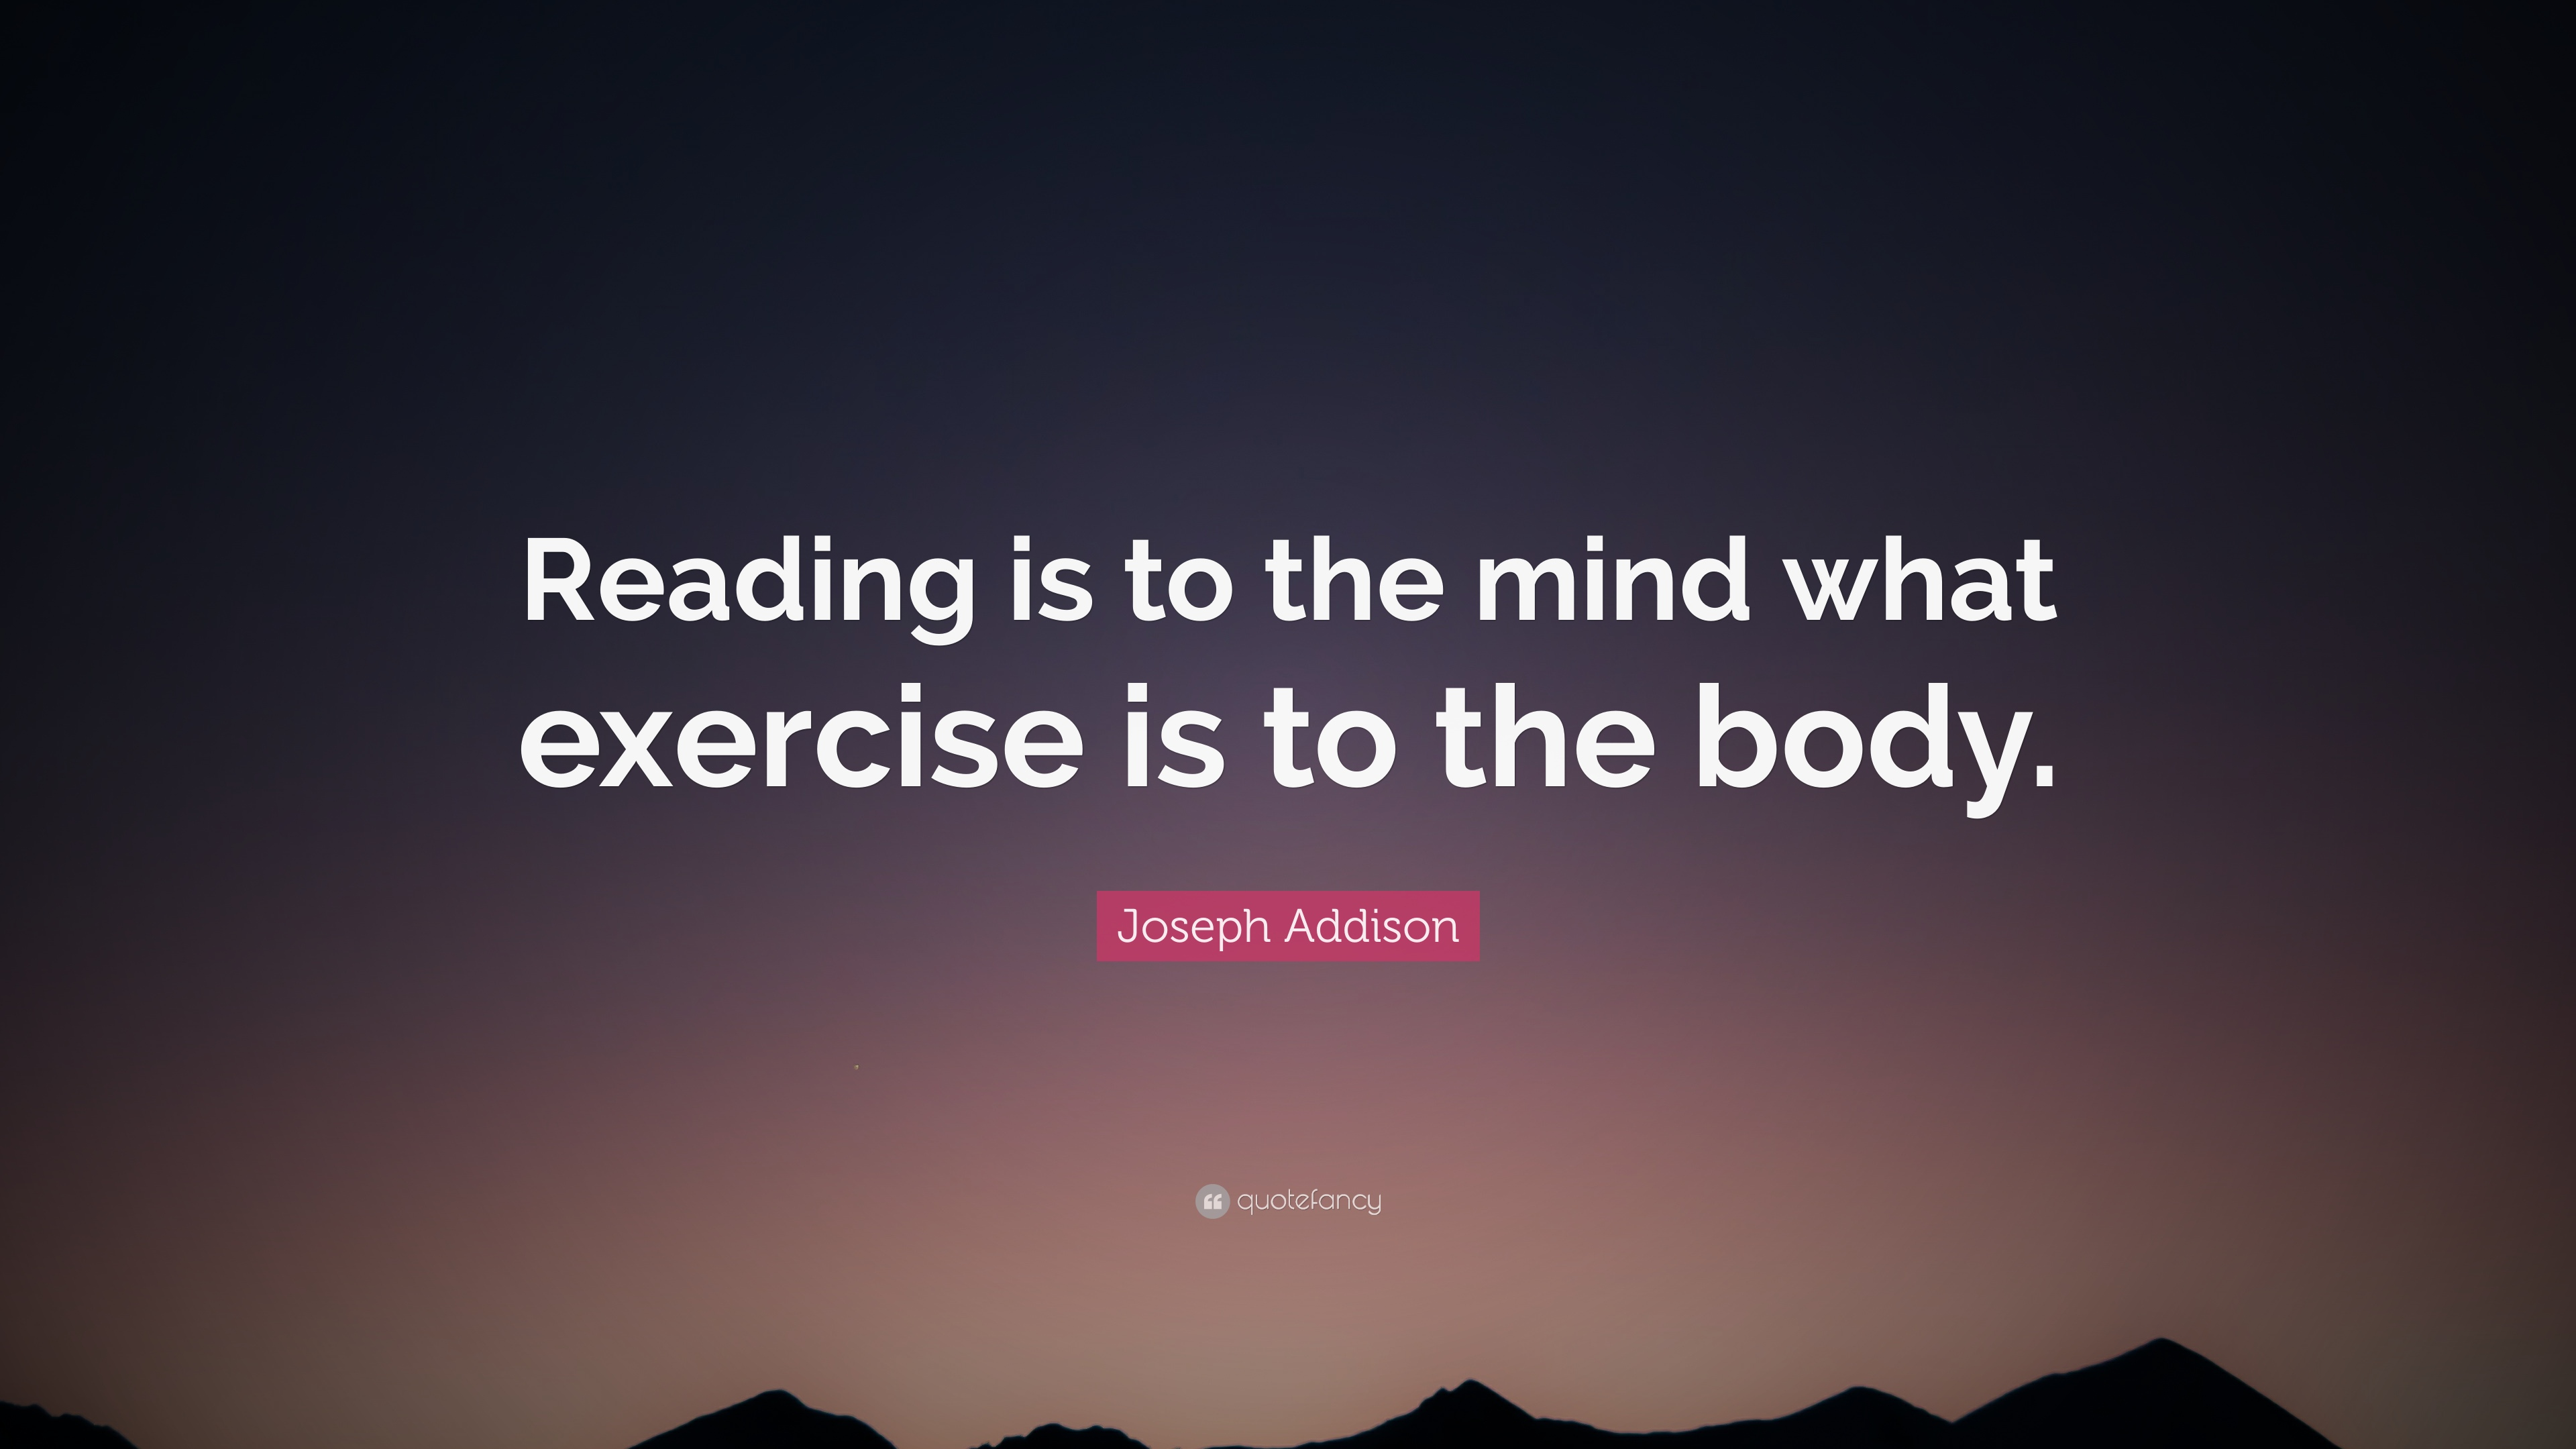 reading is to the mind what exercise is to the body expansion of idea